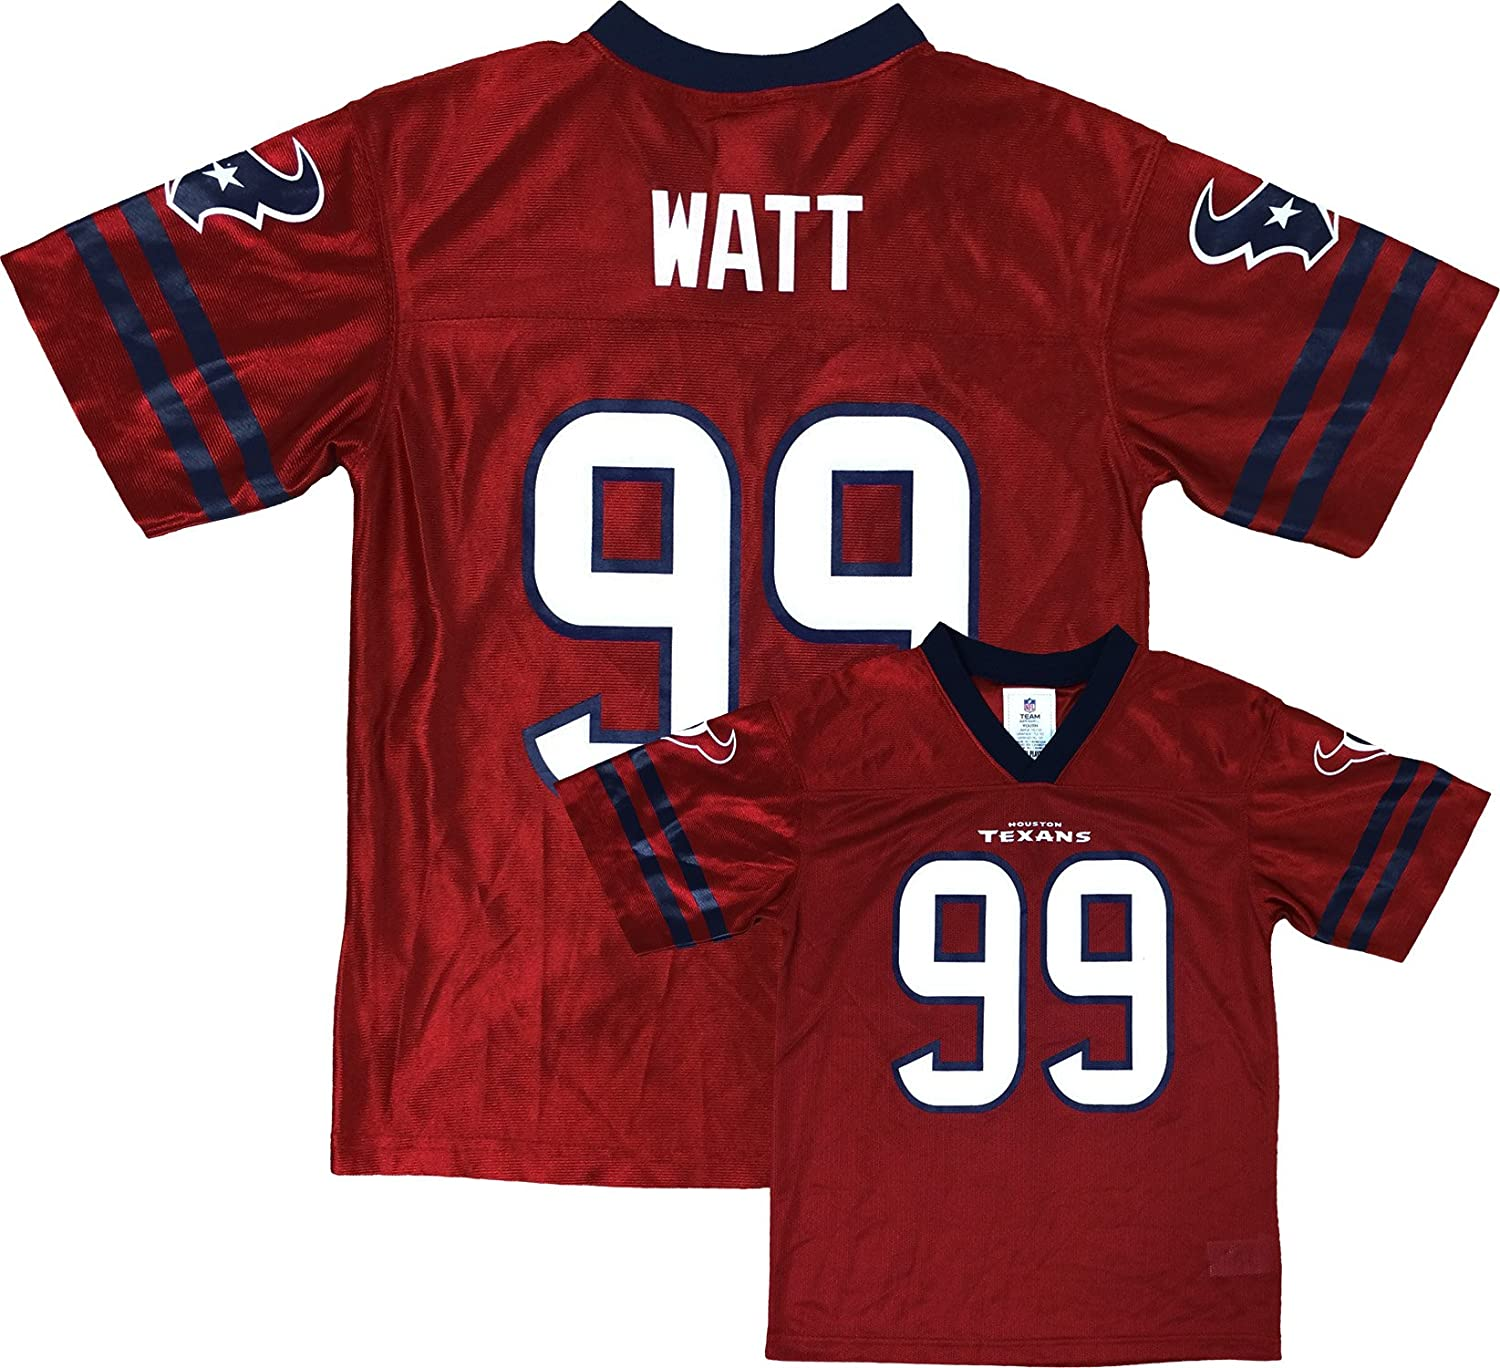 new product 43bfd 34298 Amazon.com: Outerstuff JJ Watt Houston Texans Red Alternate ...